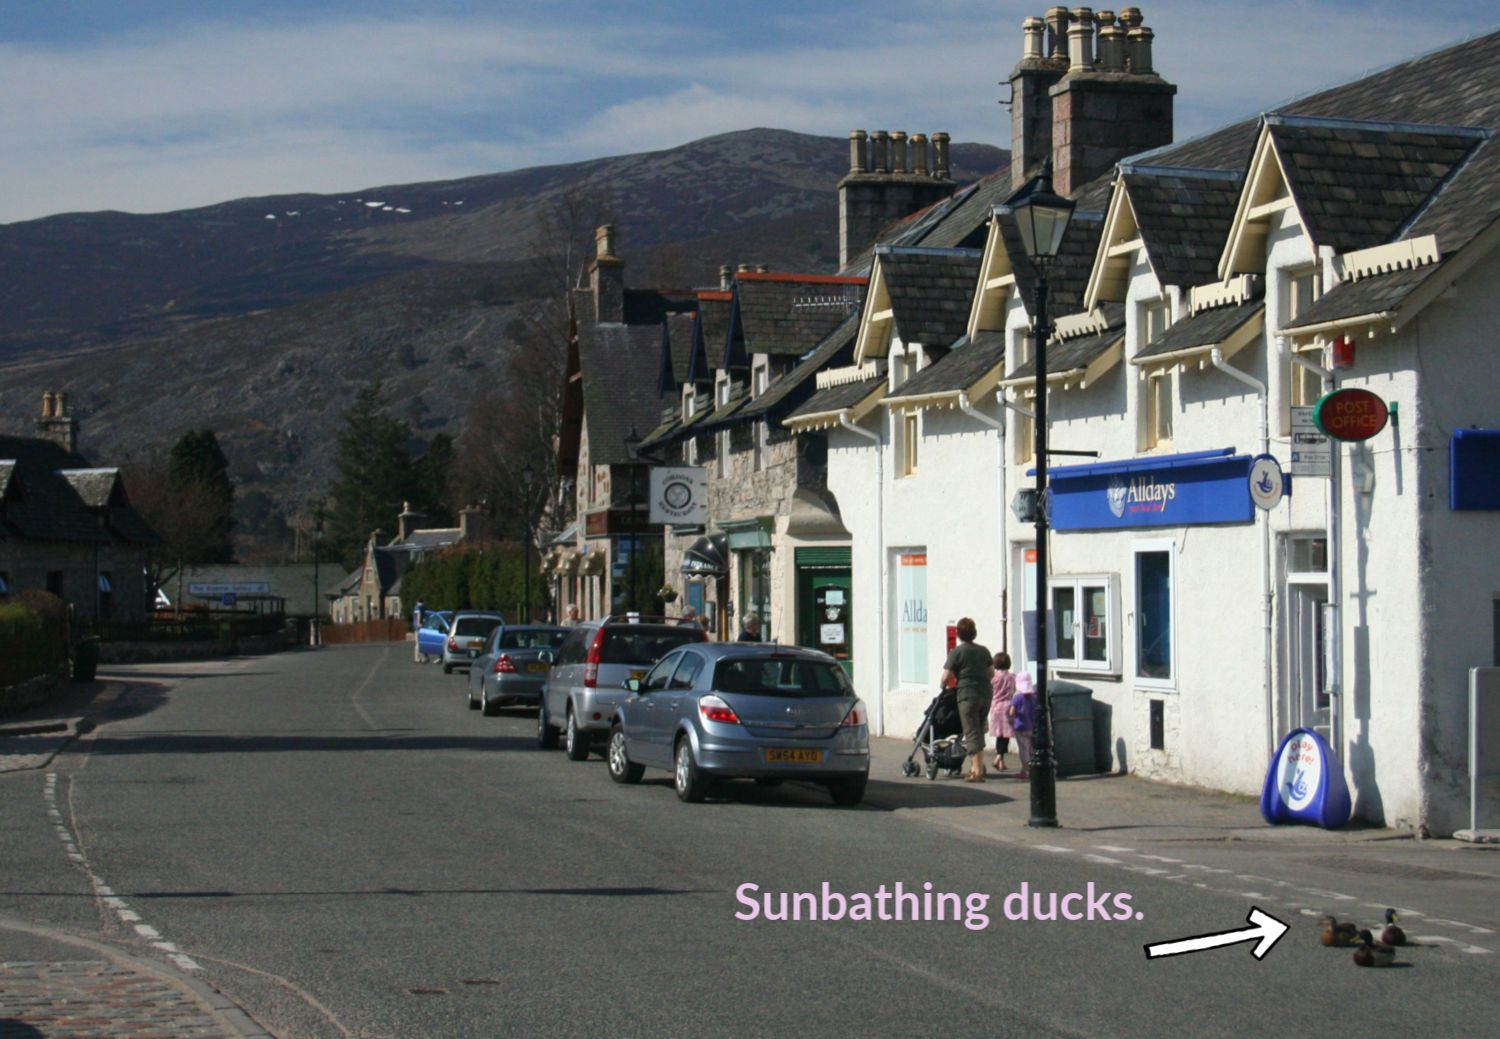 My final proof that it can be freakily warm sometimes in Scotland. Braermar main street and the ducks are feeling the heat. (They are also, unaccountably, feeling the street.) DATE: As above 13 April 2007.